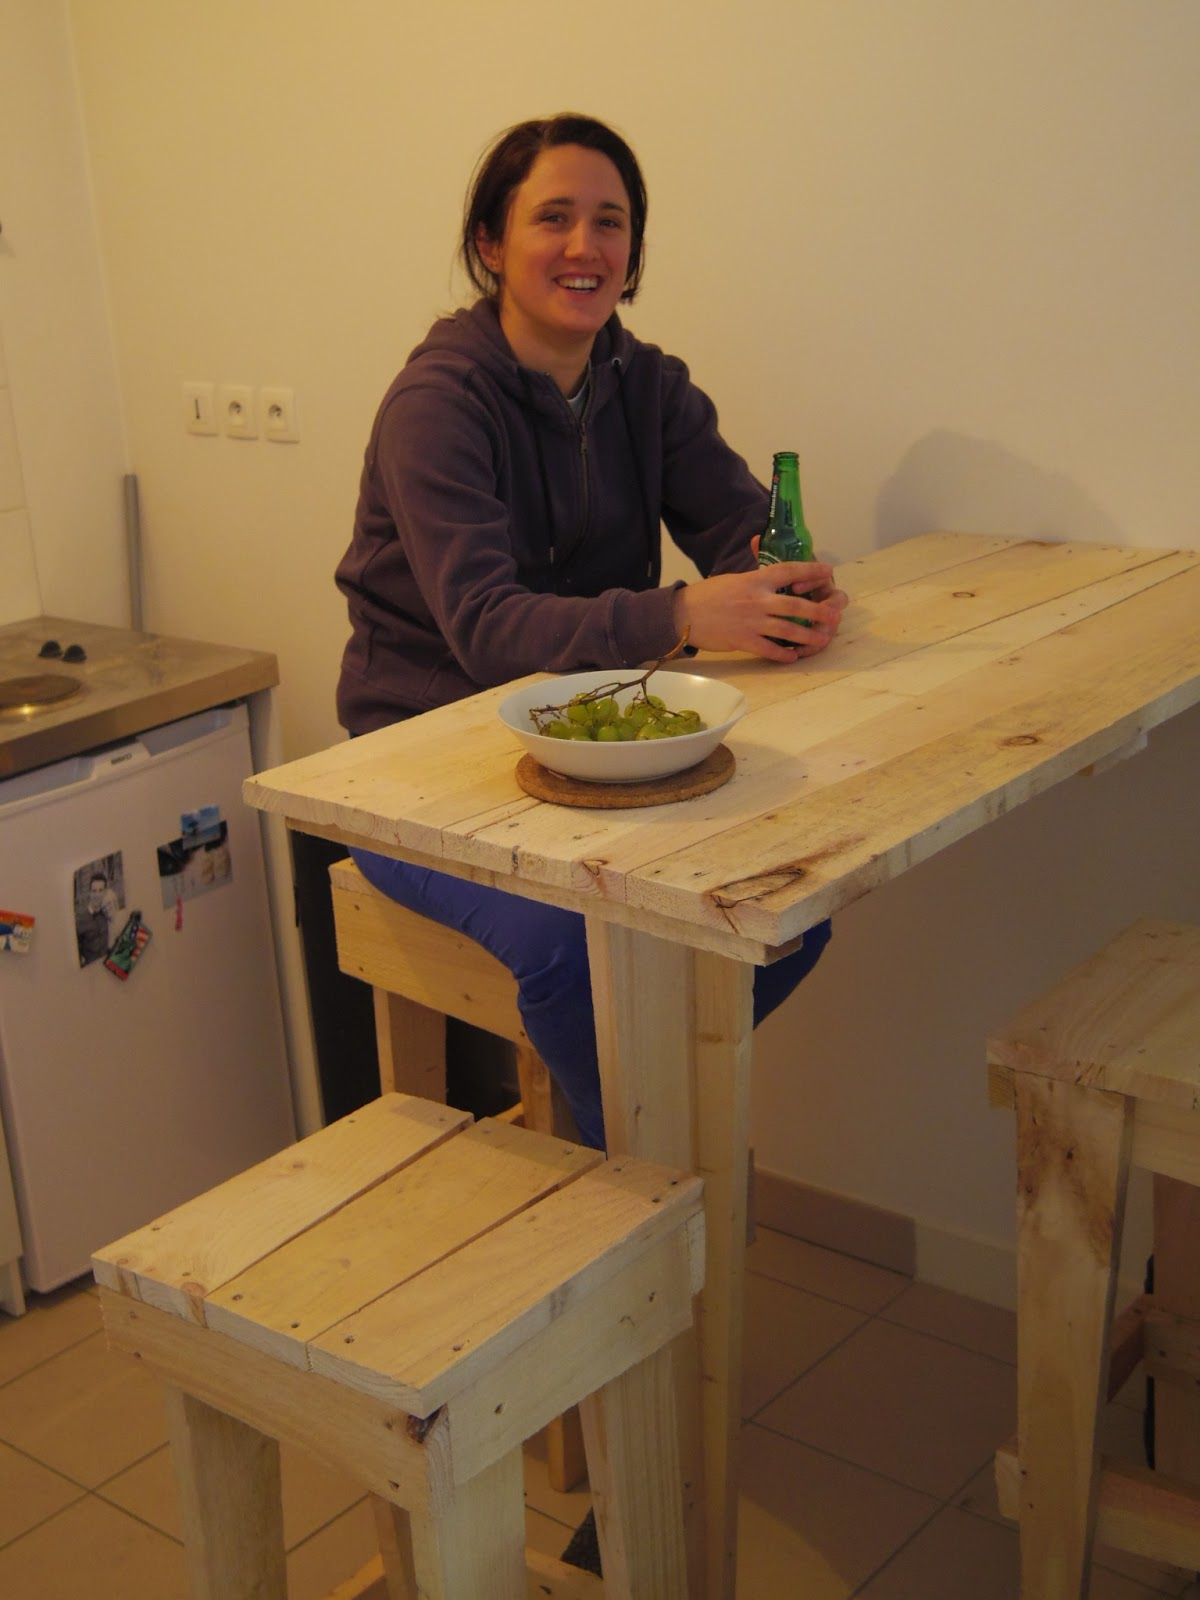 Comment Faire Un Bar De Cuisine Good On A Commenc Par La Table Bar De La Cuisine Ud